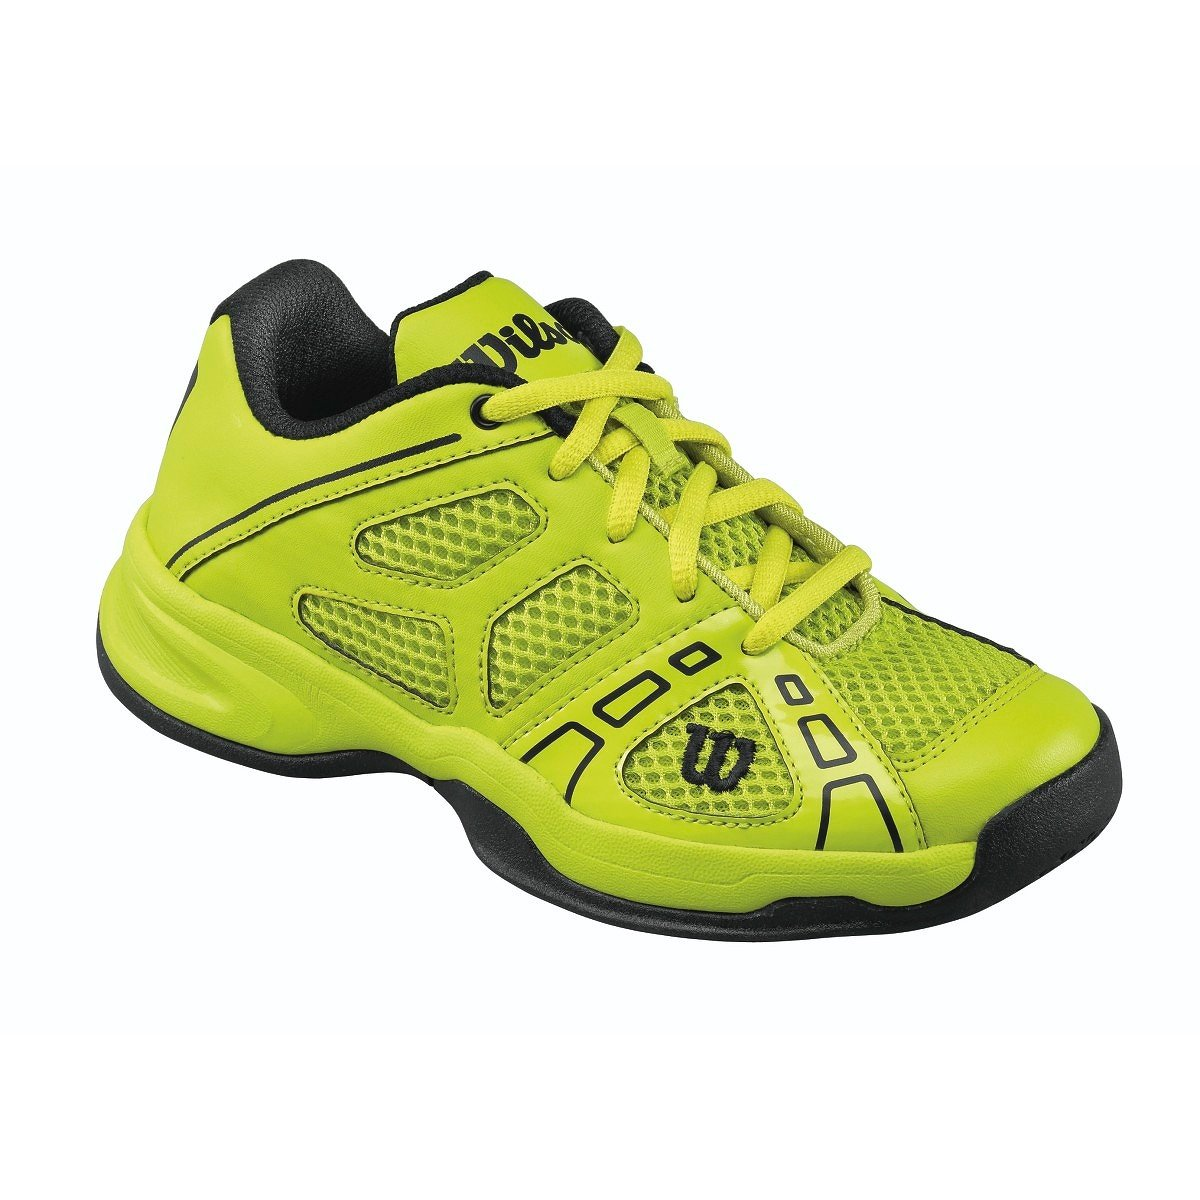 37cfd8fa0eb3 Youth Tennis Shoe - Intense Lime Black